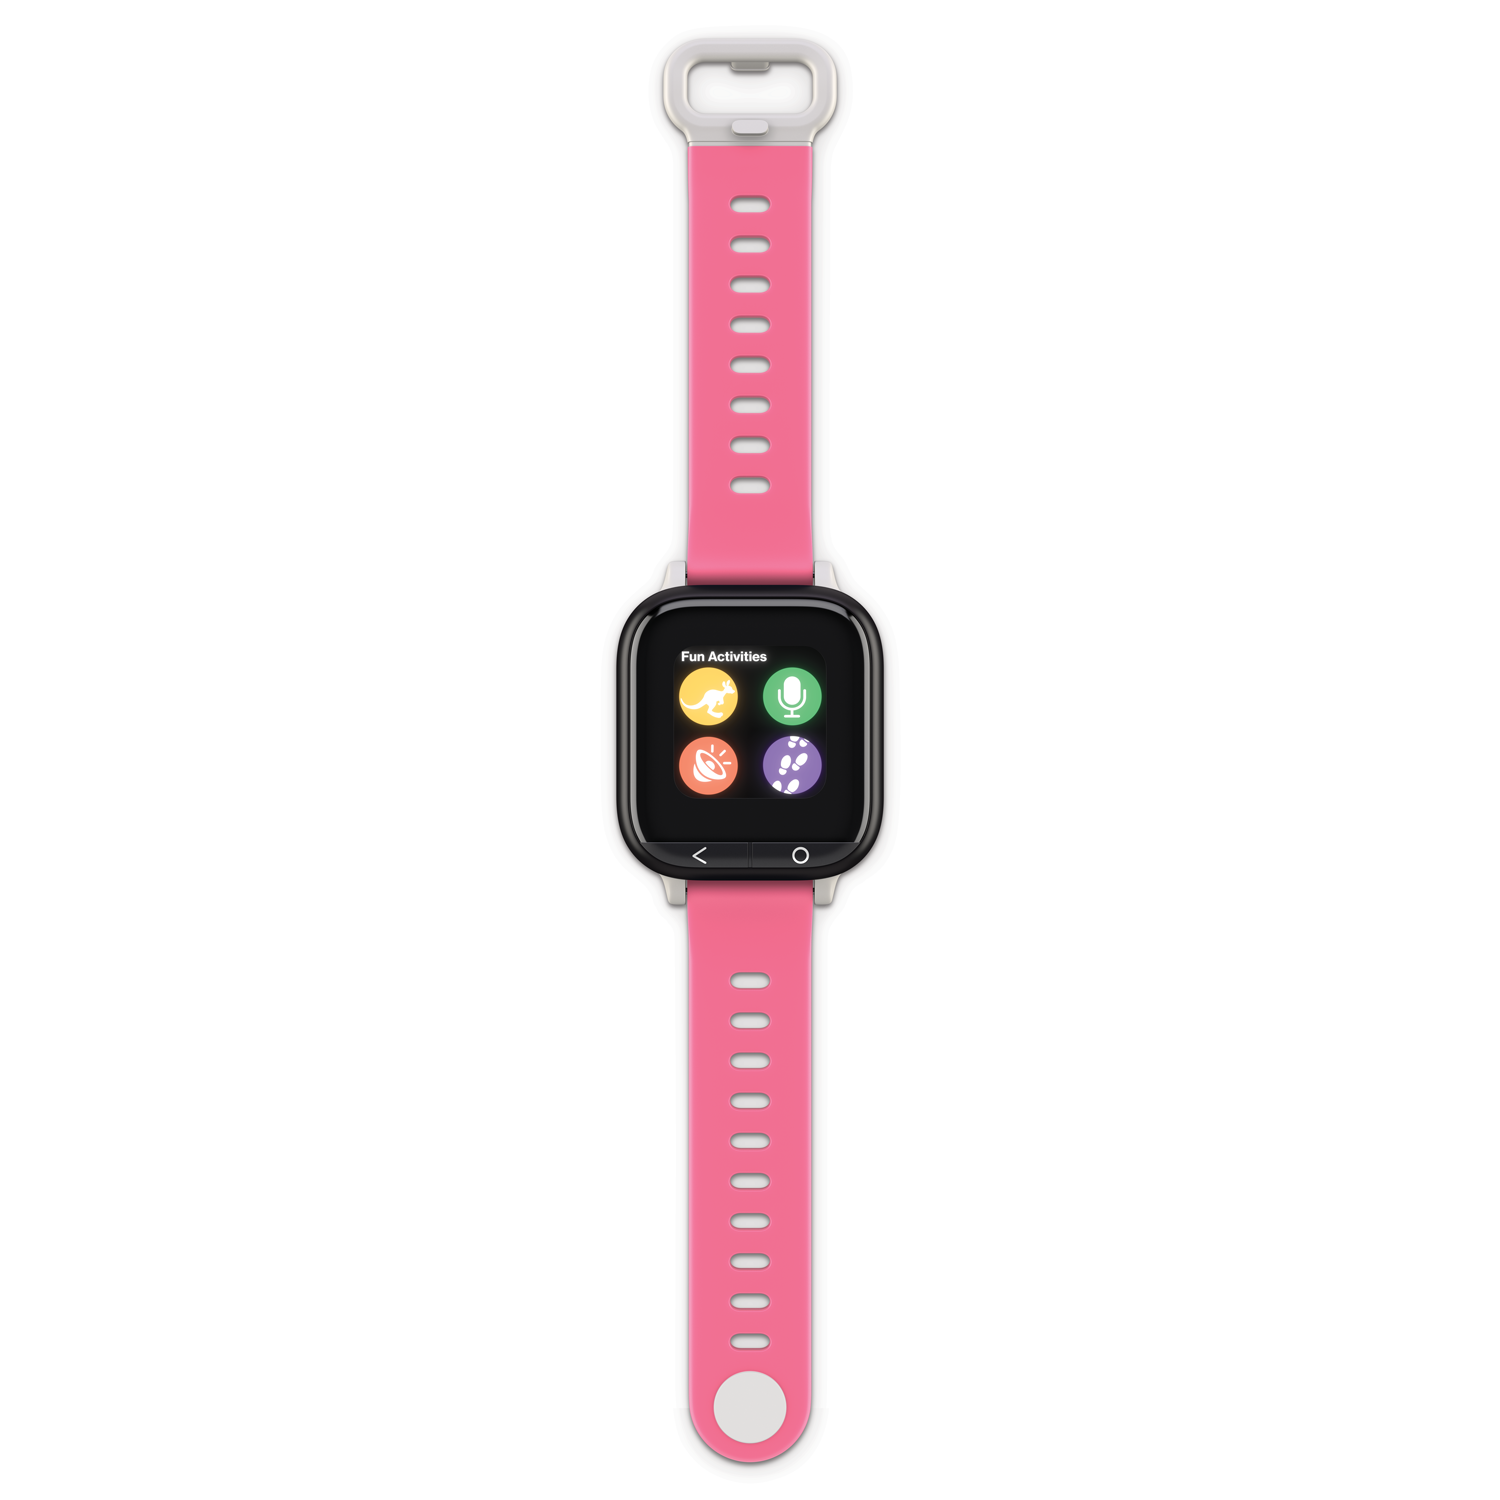 VZ_GizmoWatch_Front_PINK_v50.png